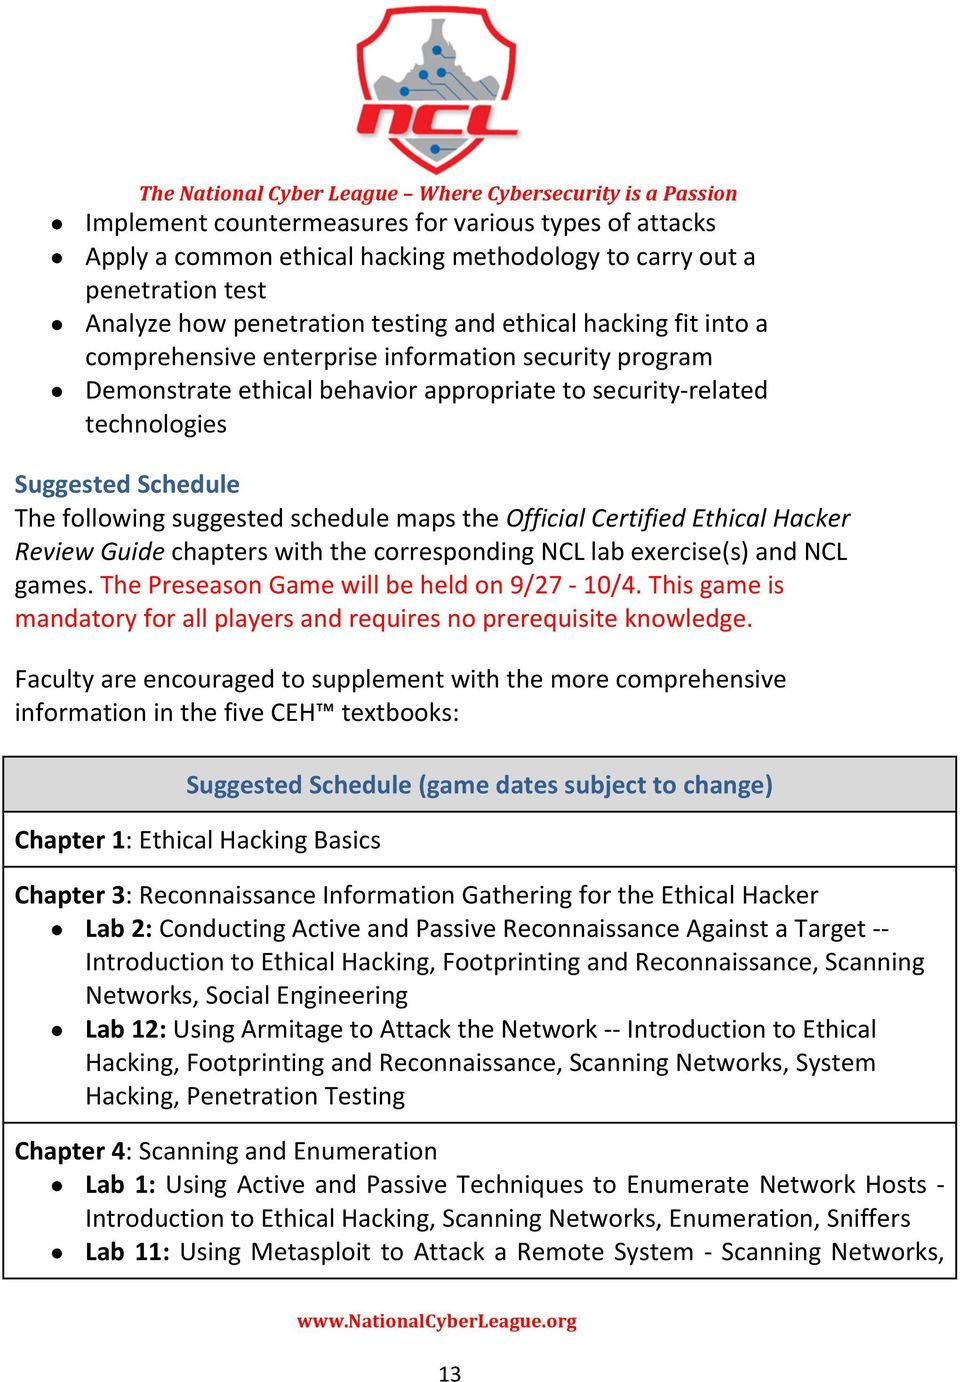 Certified Ethical Hacker Review Guide chapters with the corresponding NCL lab exercise(s) and NCL games. The Preseason Game will be held on 9/27-10/4.